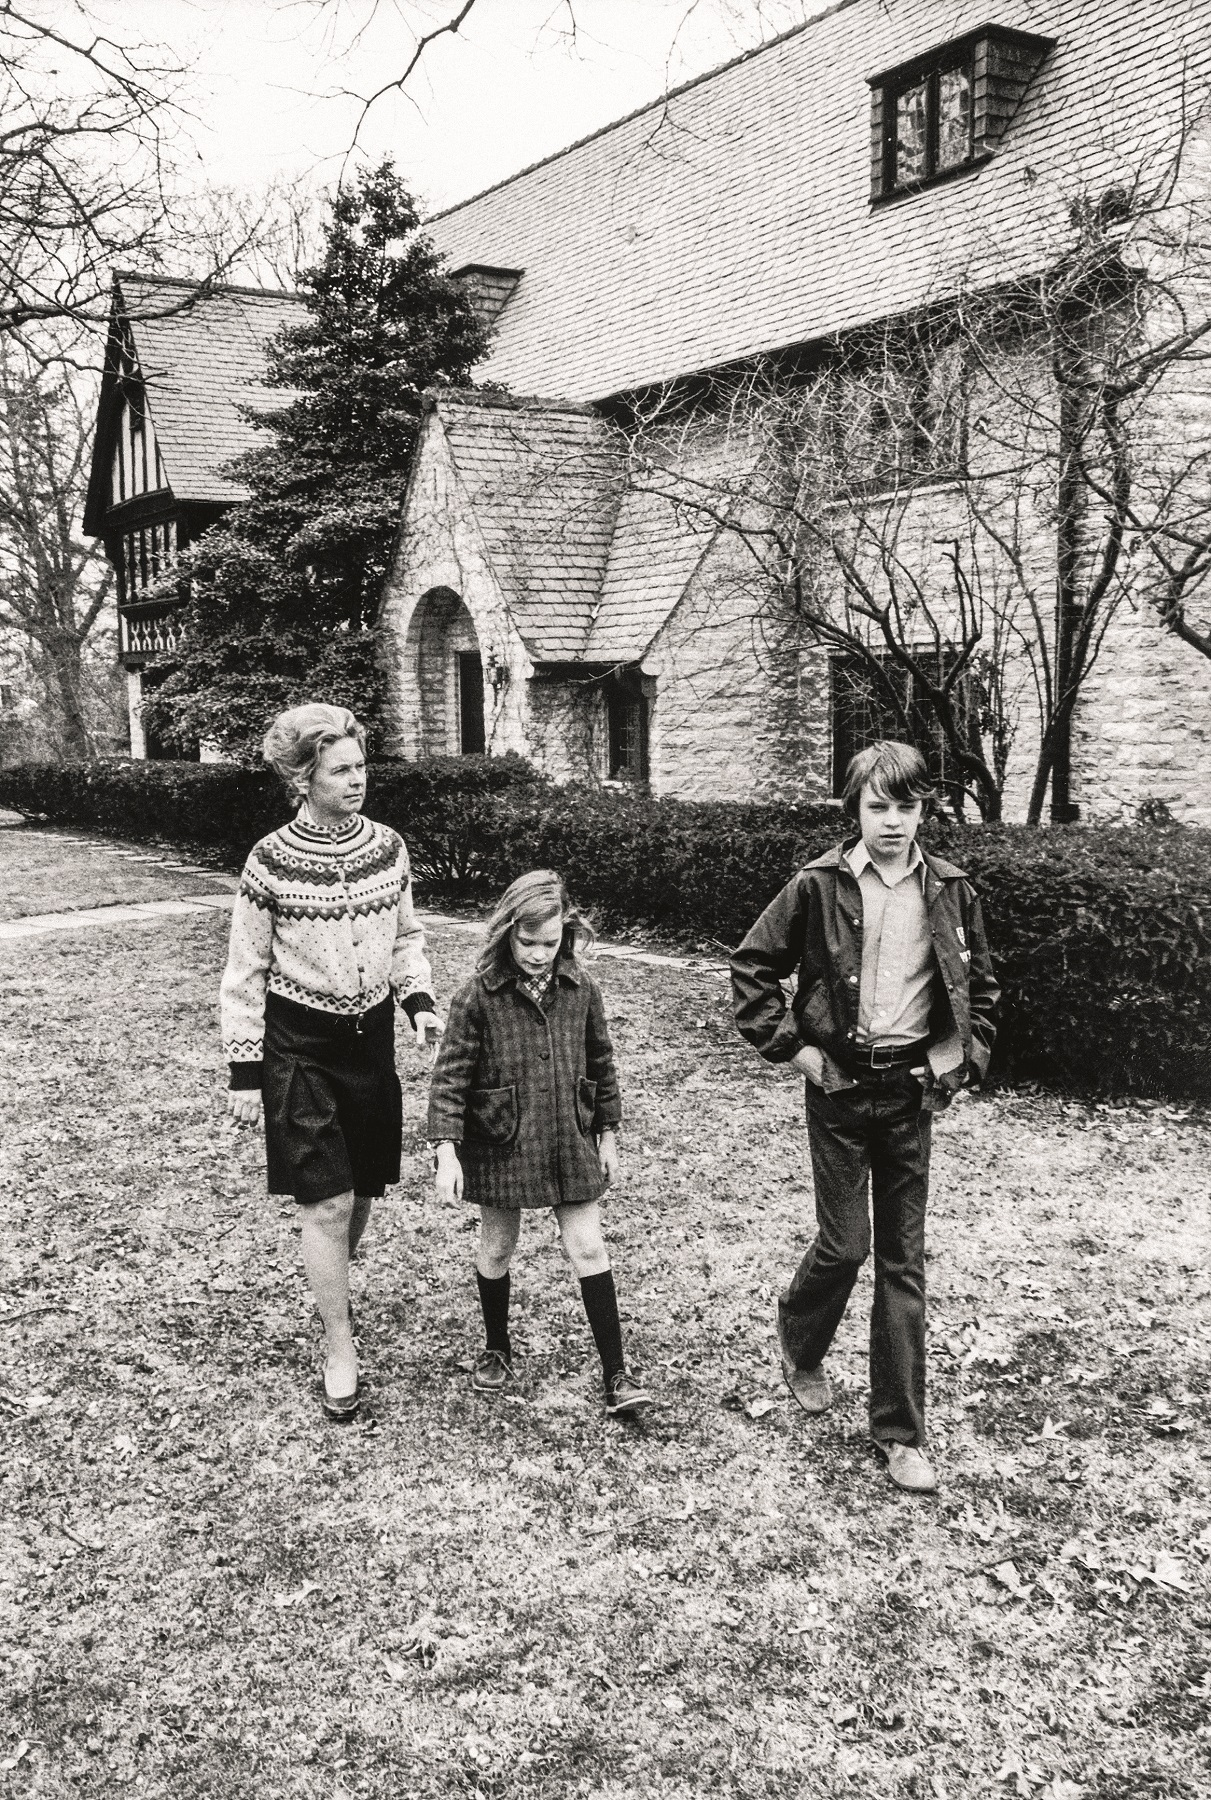 American political activist Phyllis Schlafly (left) walks in her yard with her children Ann and Andy, Alton, Illinois, 1975. (Photo by Michael Mauney/The LIFE Images Collection via Getty Images/Getty Images)